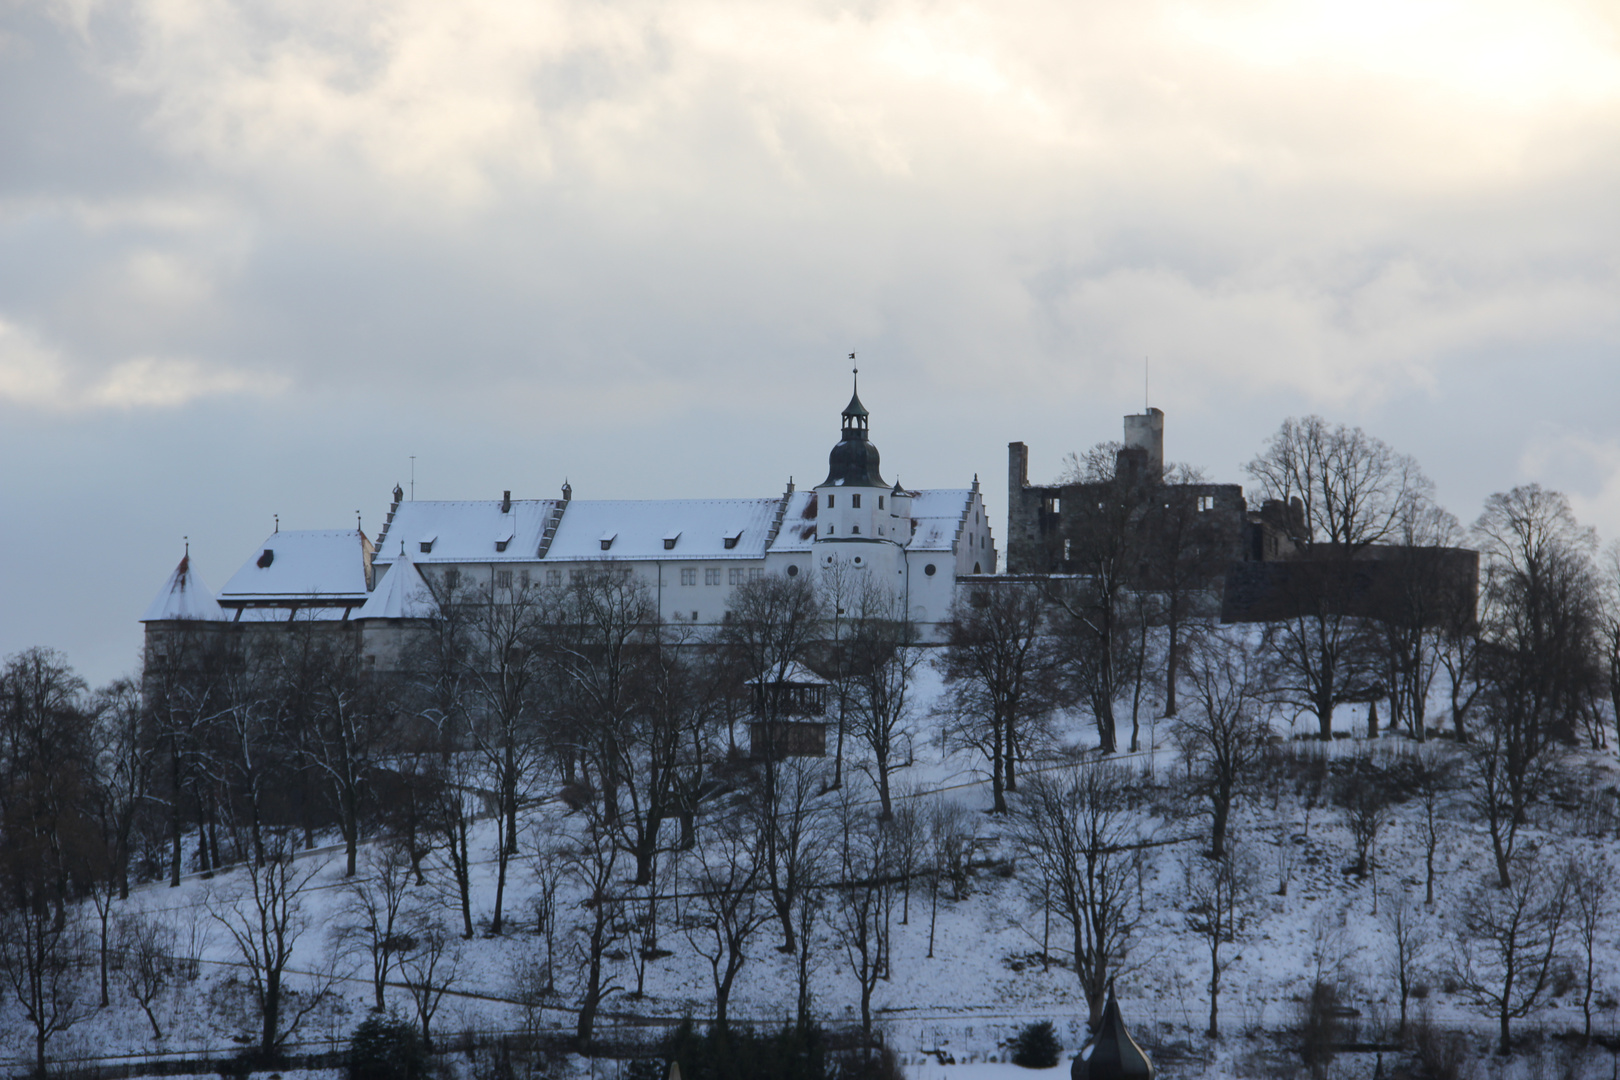 Winter am Schloss Hellenstein